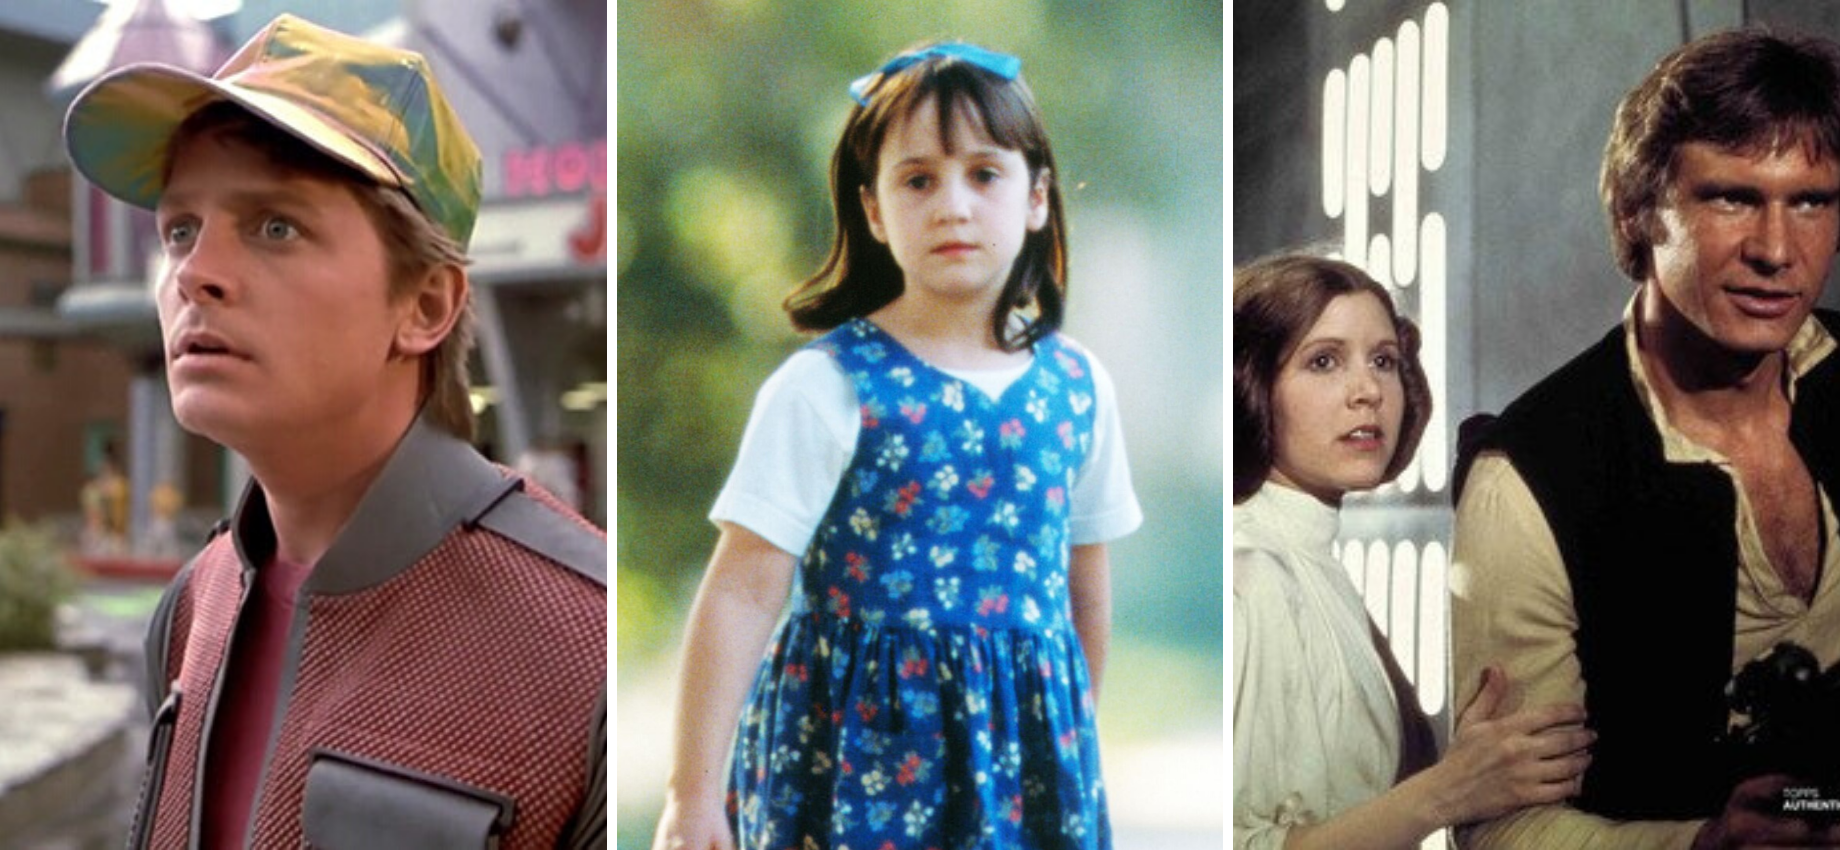 'Stop and Fangirl' Episode 104: Movies That Defined Our Childhoods